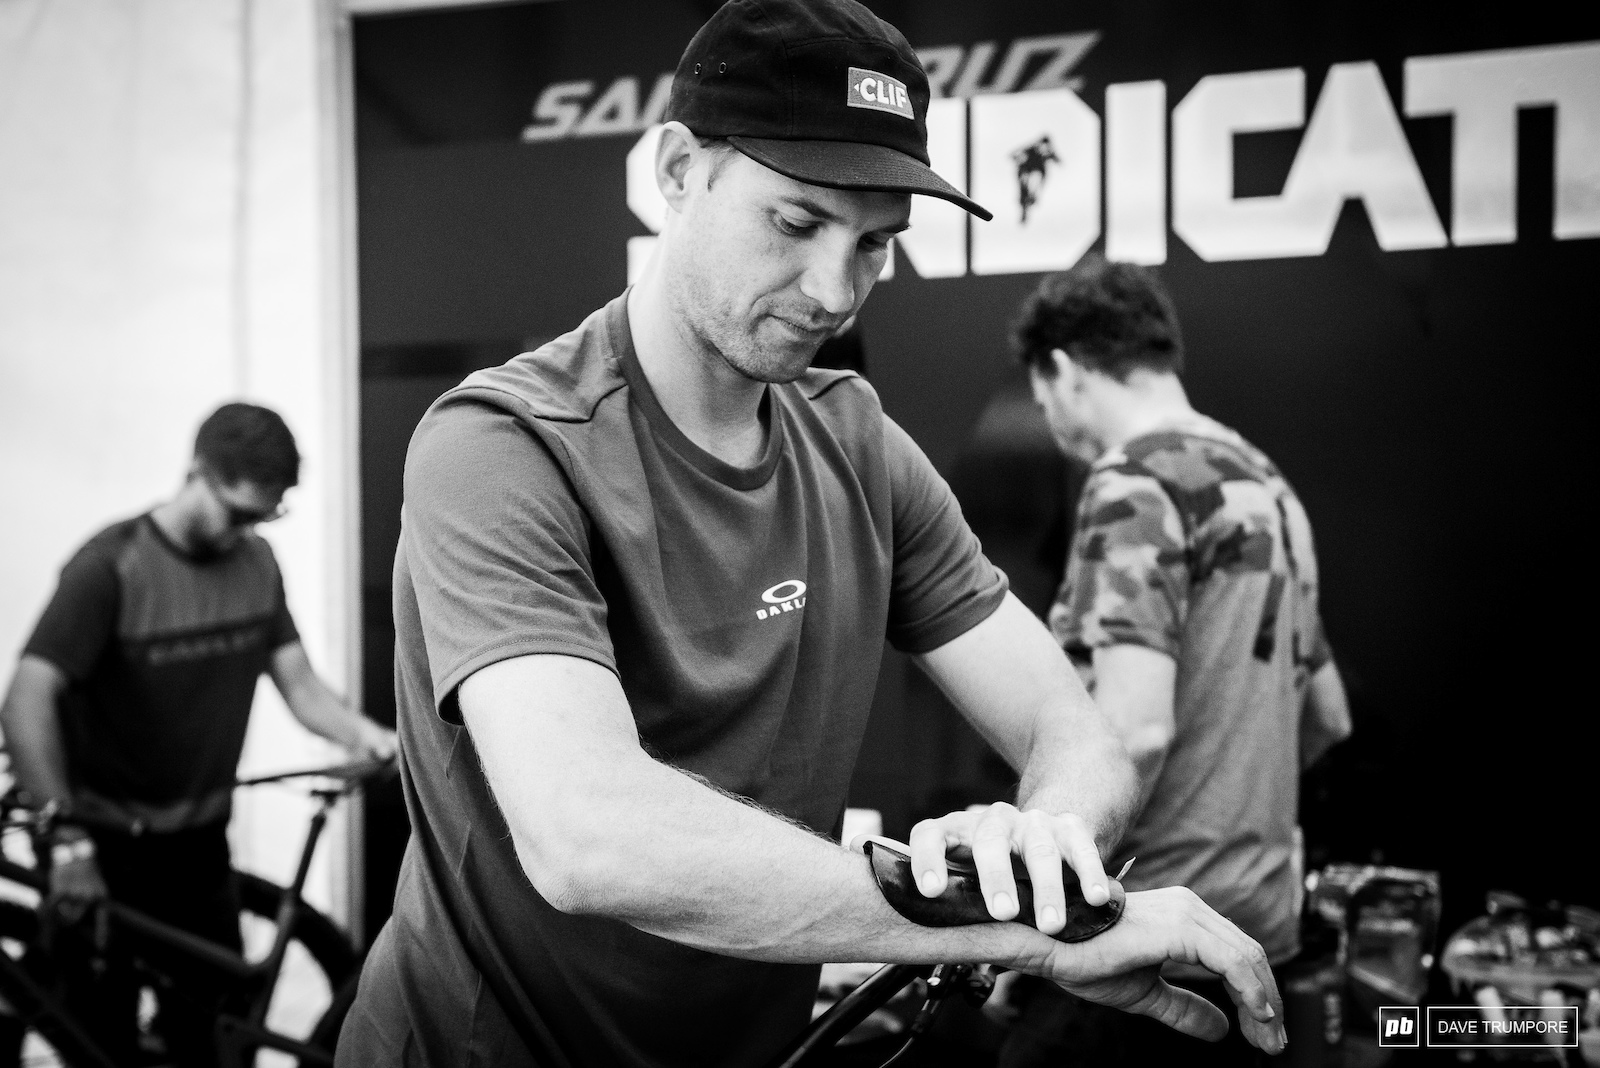 Greg Minnaar fitting a brace to his wrist that lost all it s strength while his broken arm was immobilized. Greg would take a few runs just for the training as he works to gat back up to speed but he is not racing this weekend.